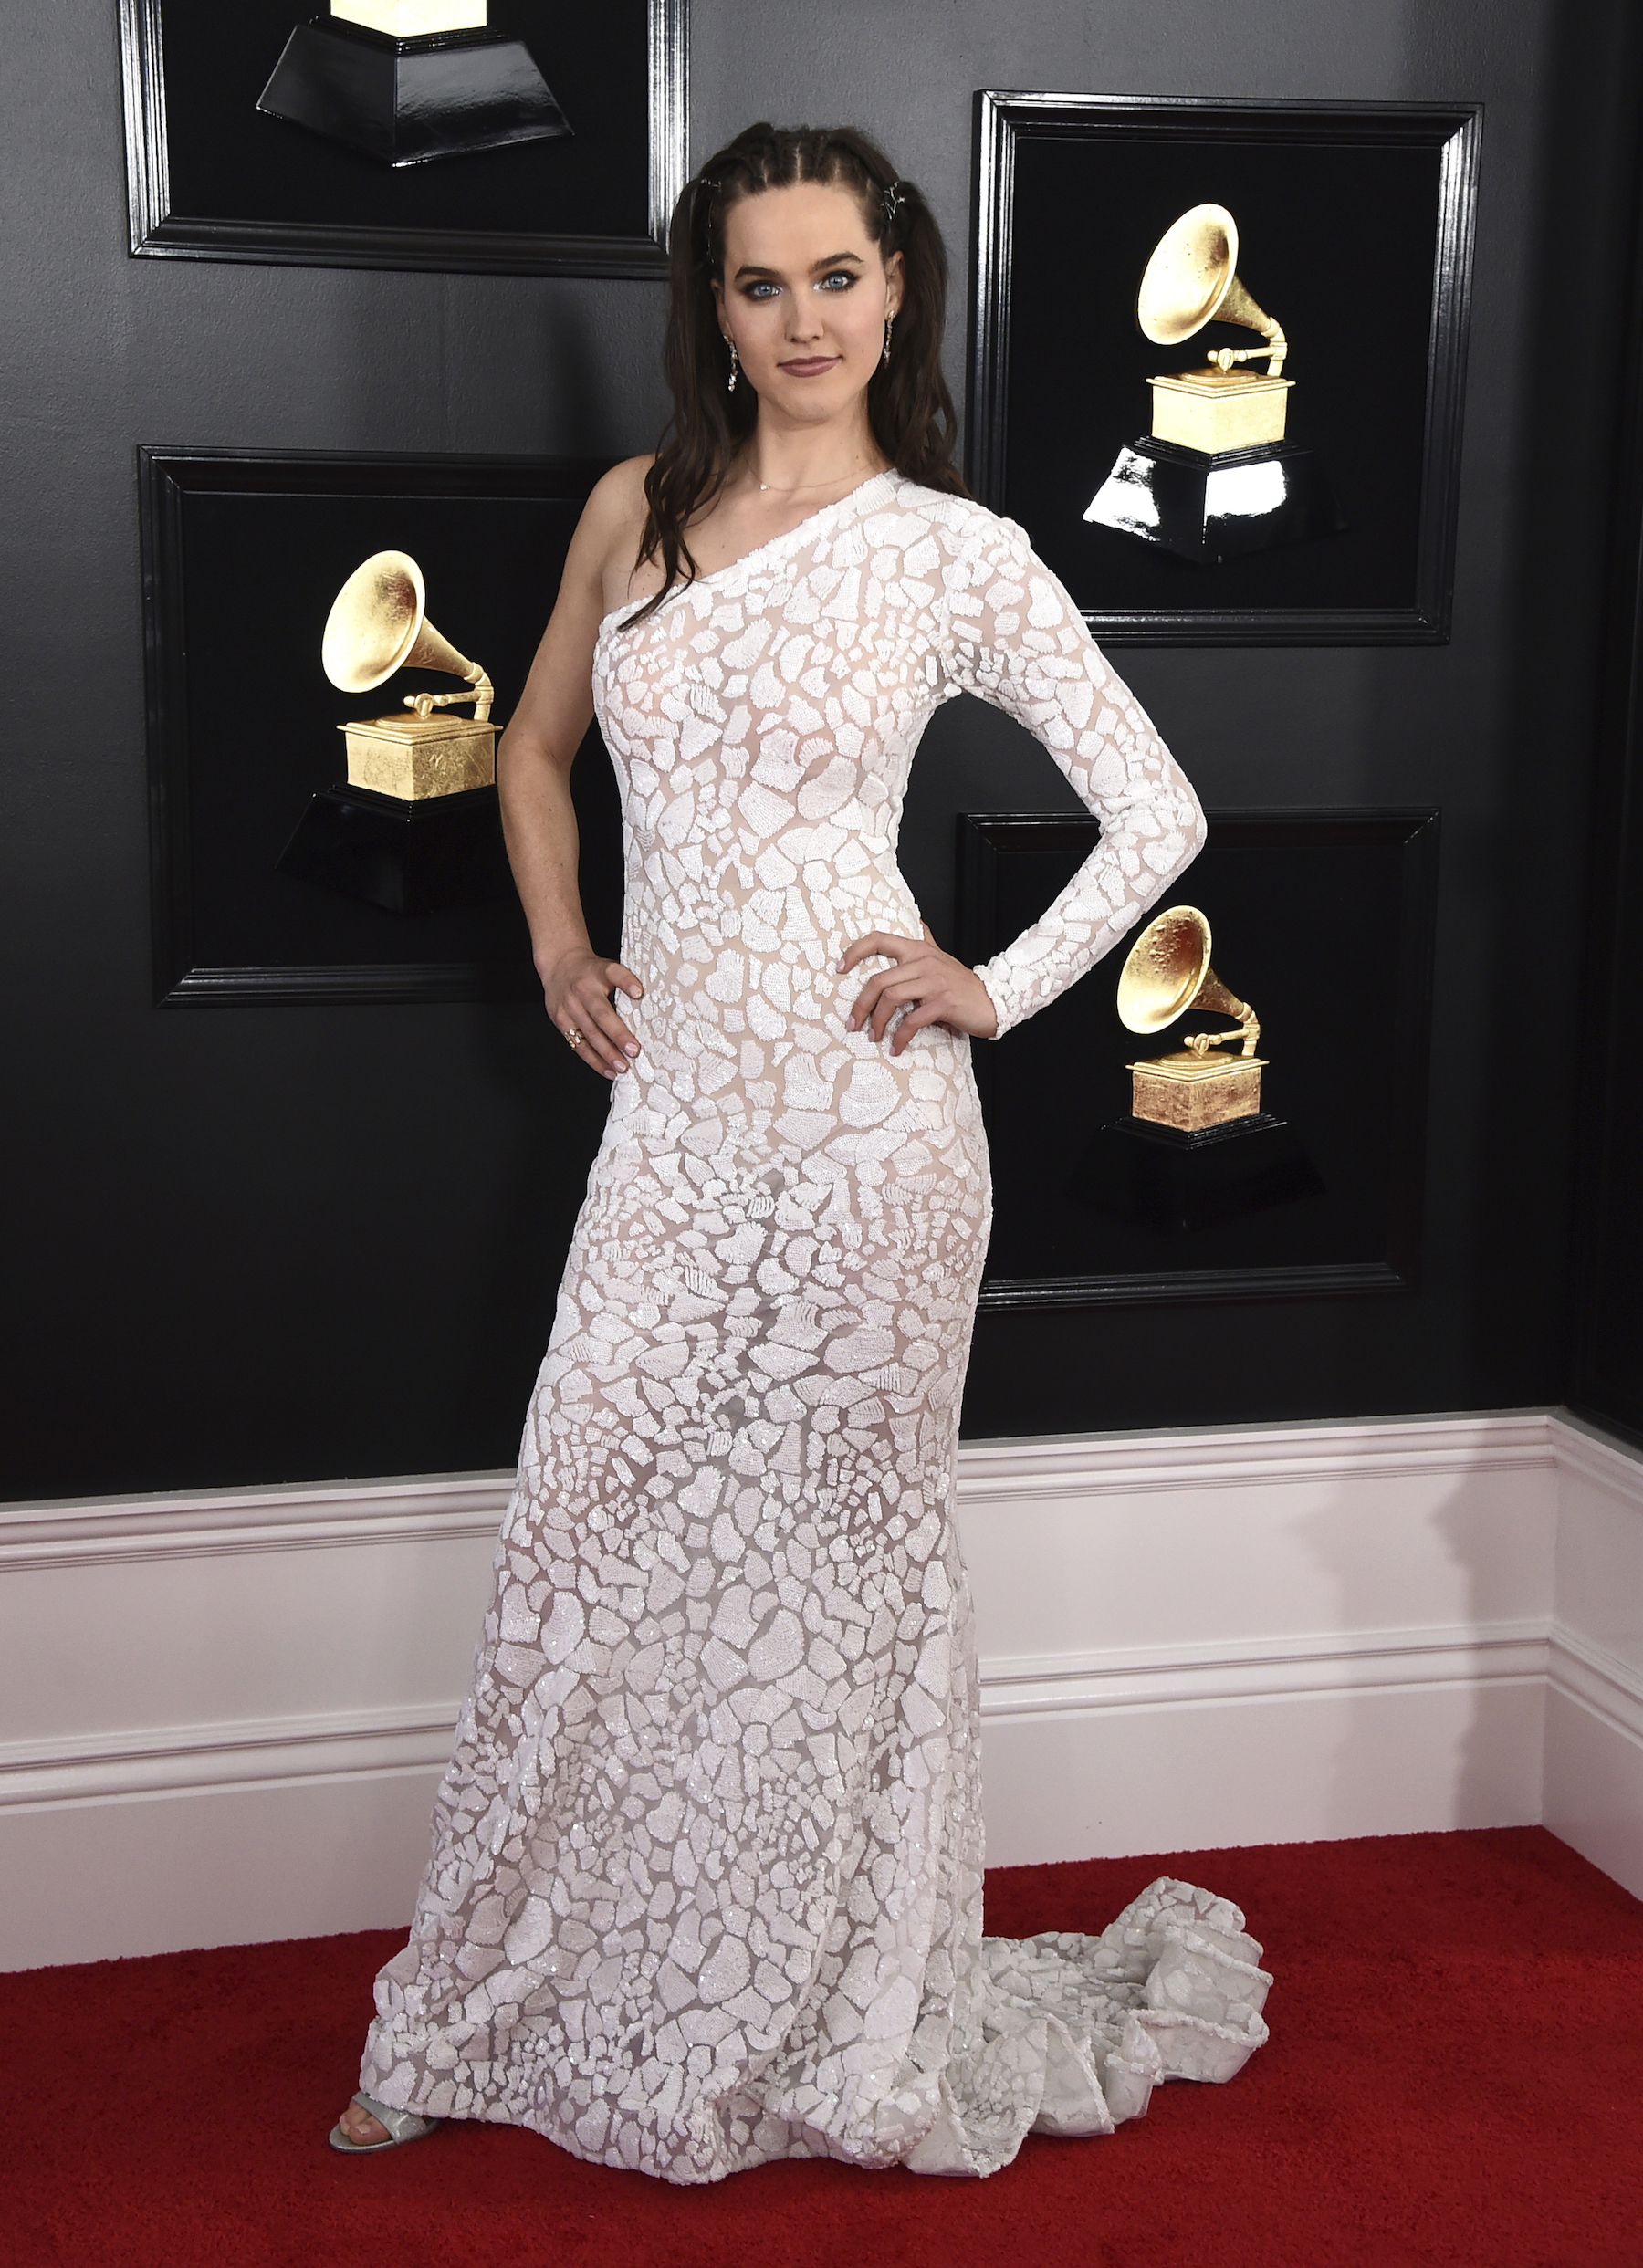 "<div class=""meta image-caption""><div class=""origin-logo origin-image ap""><span>AP</span></div><span class=""caption-text"">Sophie Hawley-Weld of Sofi Tukker arrives at the 61st annual Grammy Awards at the Staples Center on Sunday, Feb. 10, 2019, in Los Angeles. (Jordan Strauss/Invision/AP)</span></div>"